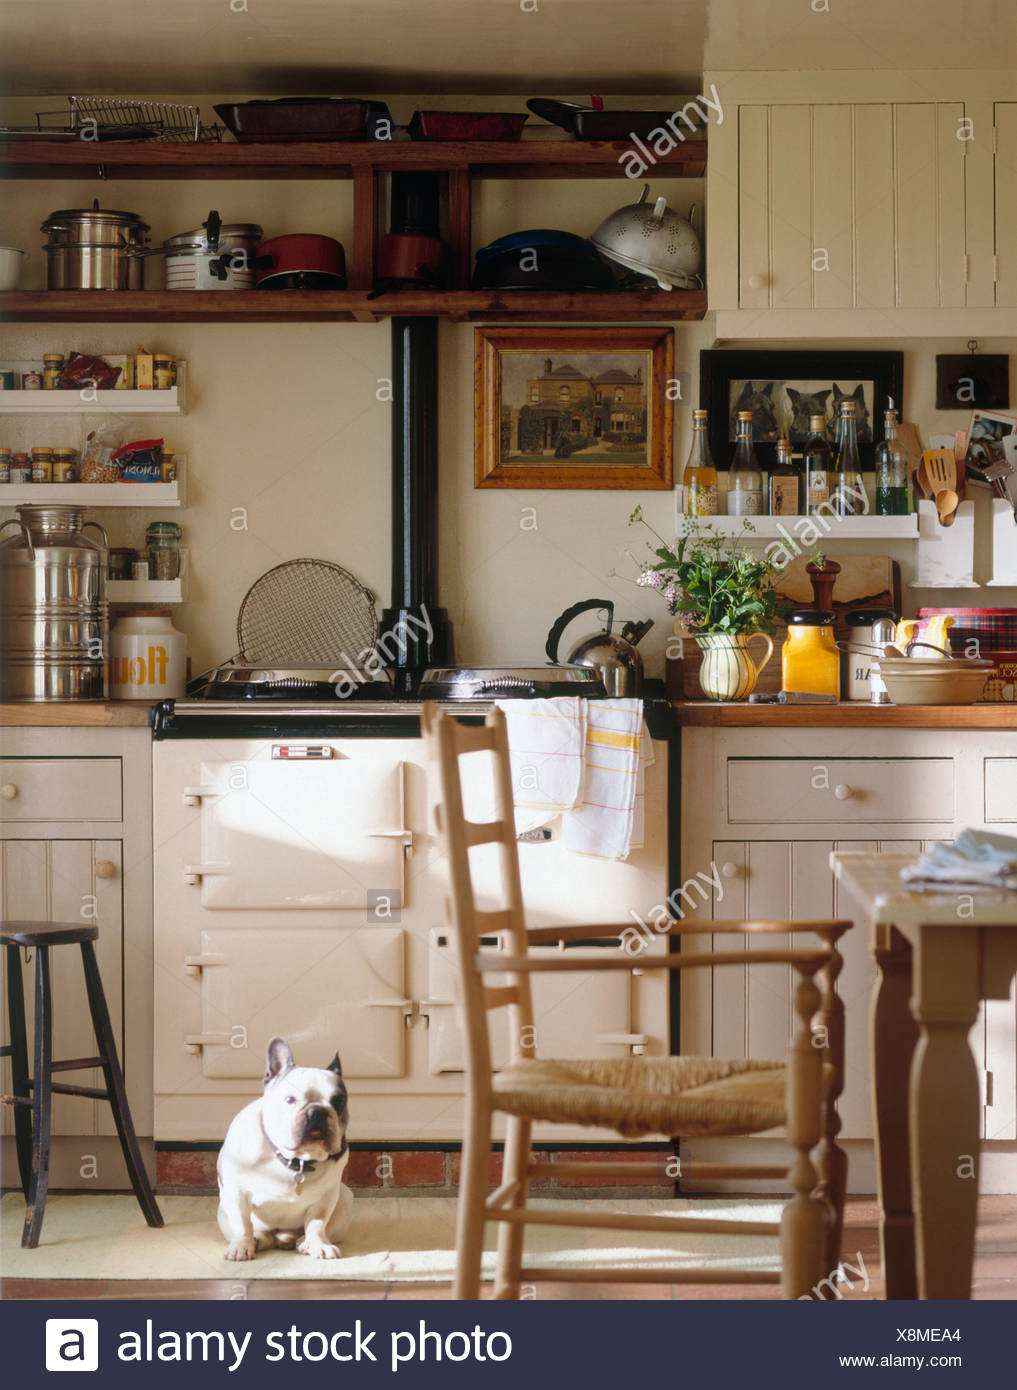 Curmudgeonly Looking Pug Dog Sitting In Front Of White Aga In Country  Kitchen With Rush Seated